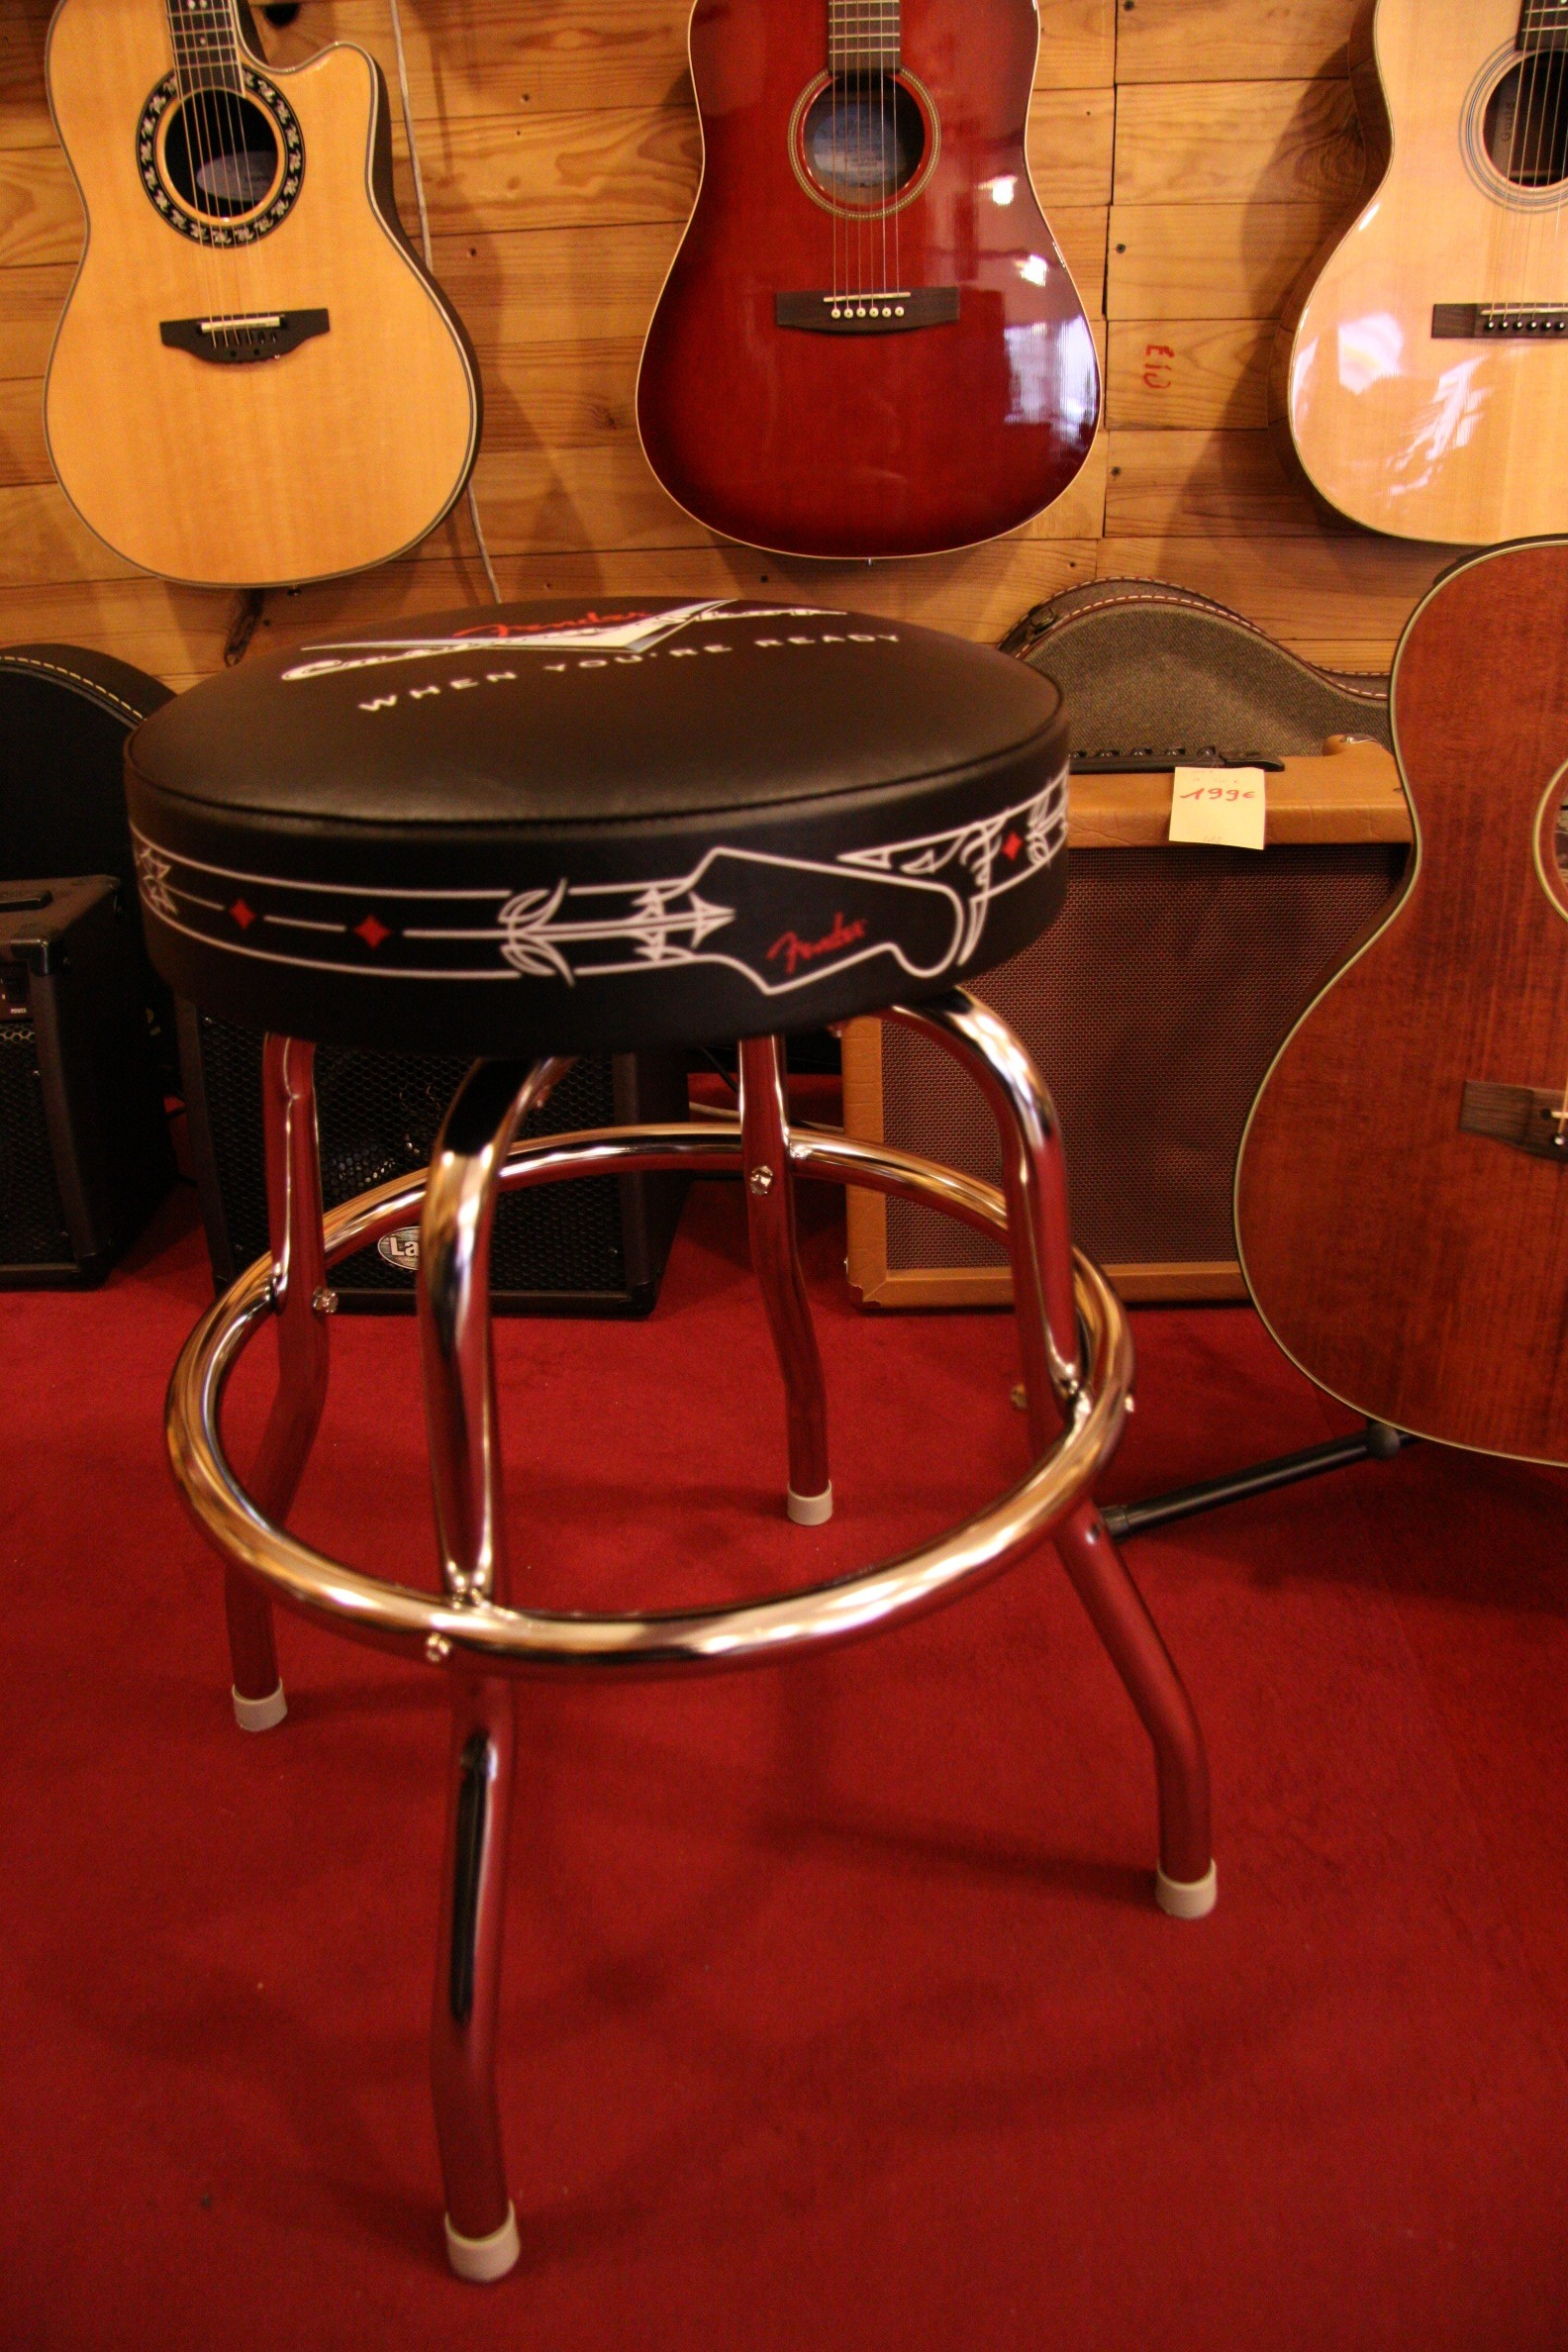 Tabouret Fender Custom Shop Rockshop Magasin De Guitares A